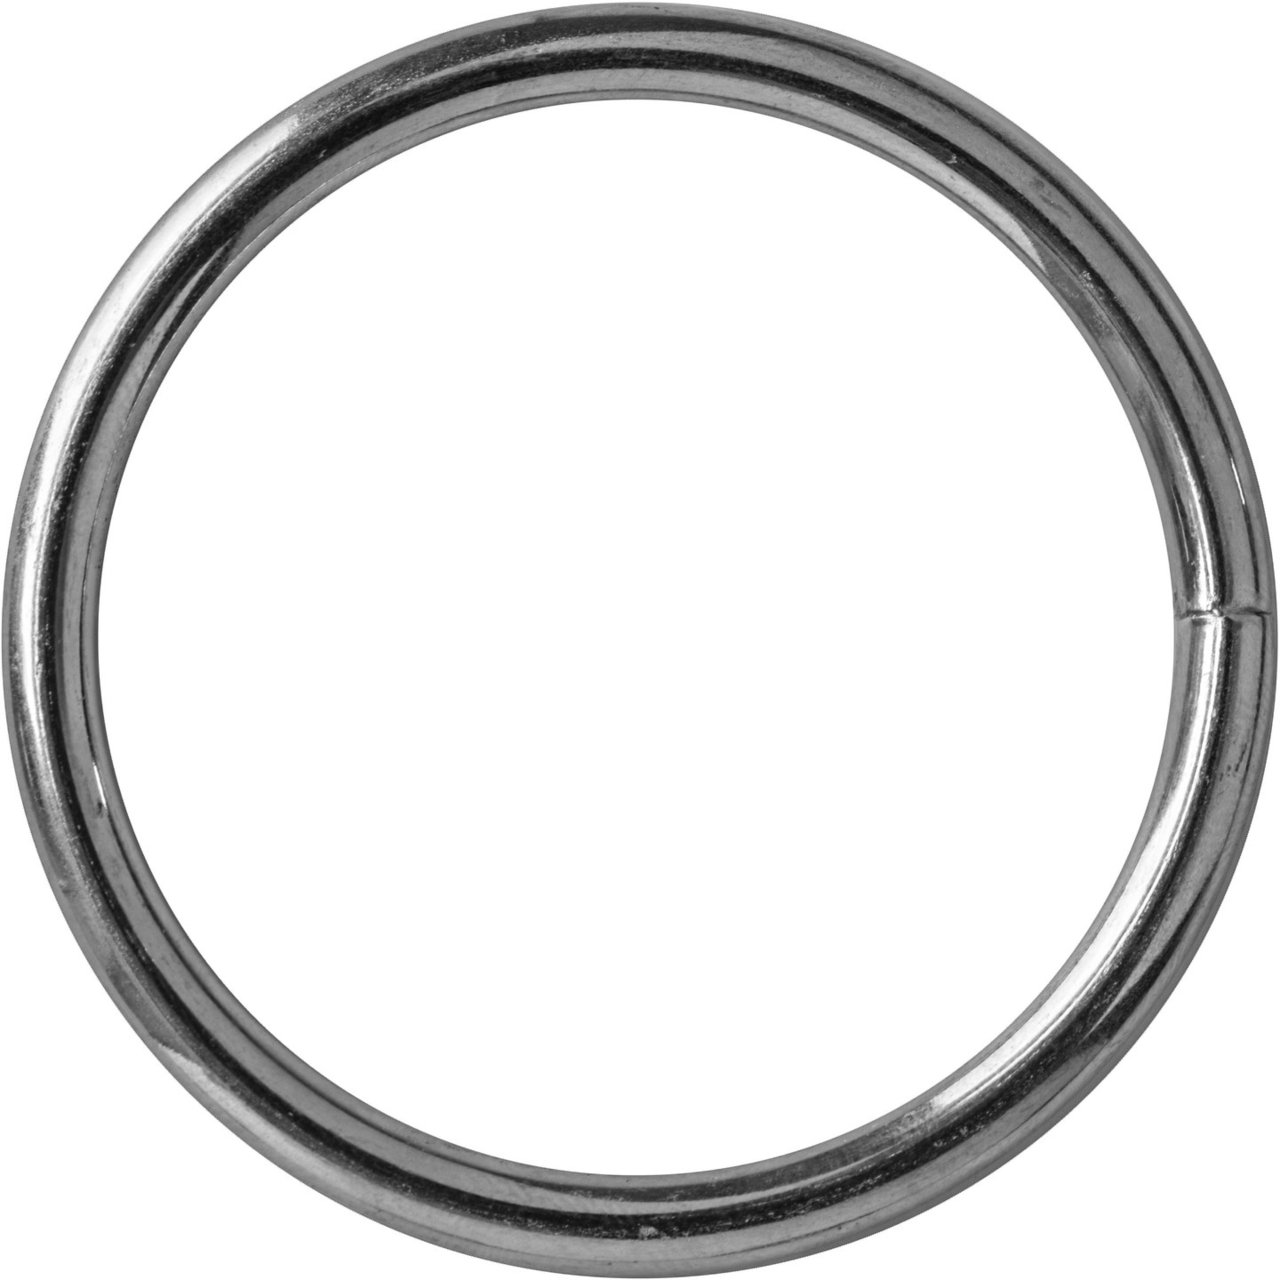 O-Ring Steel/Nickel plated 60 x 6mm